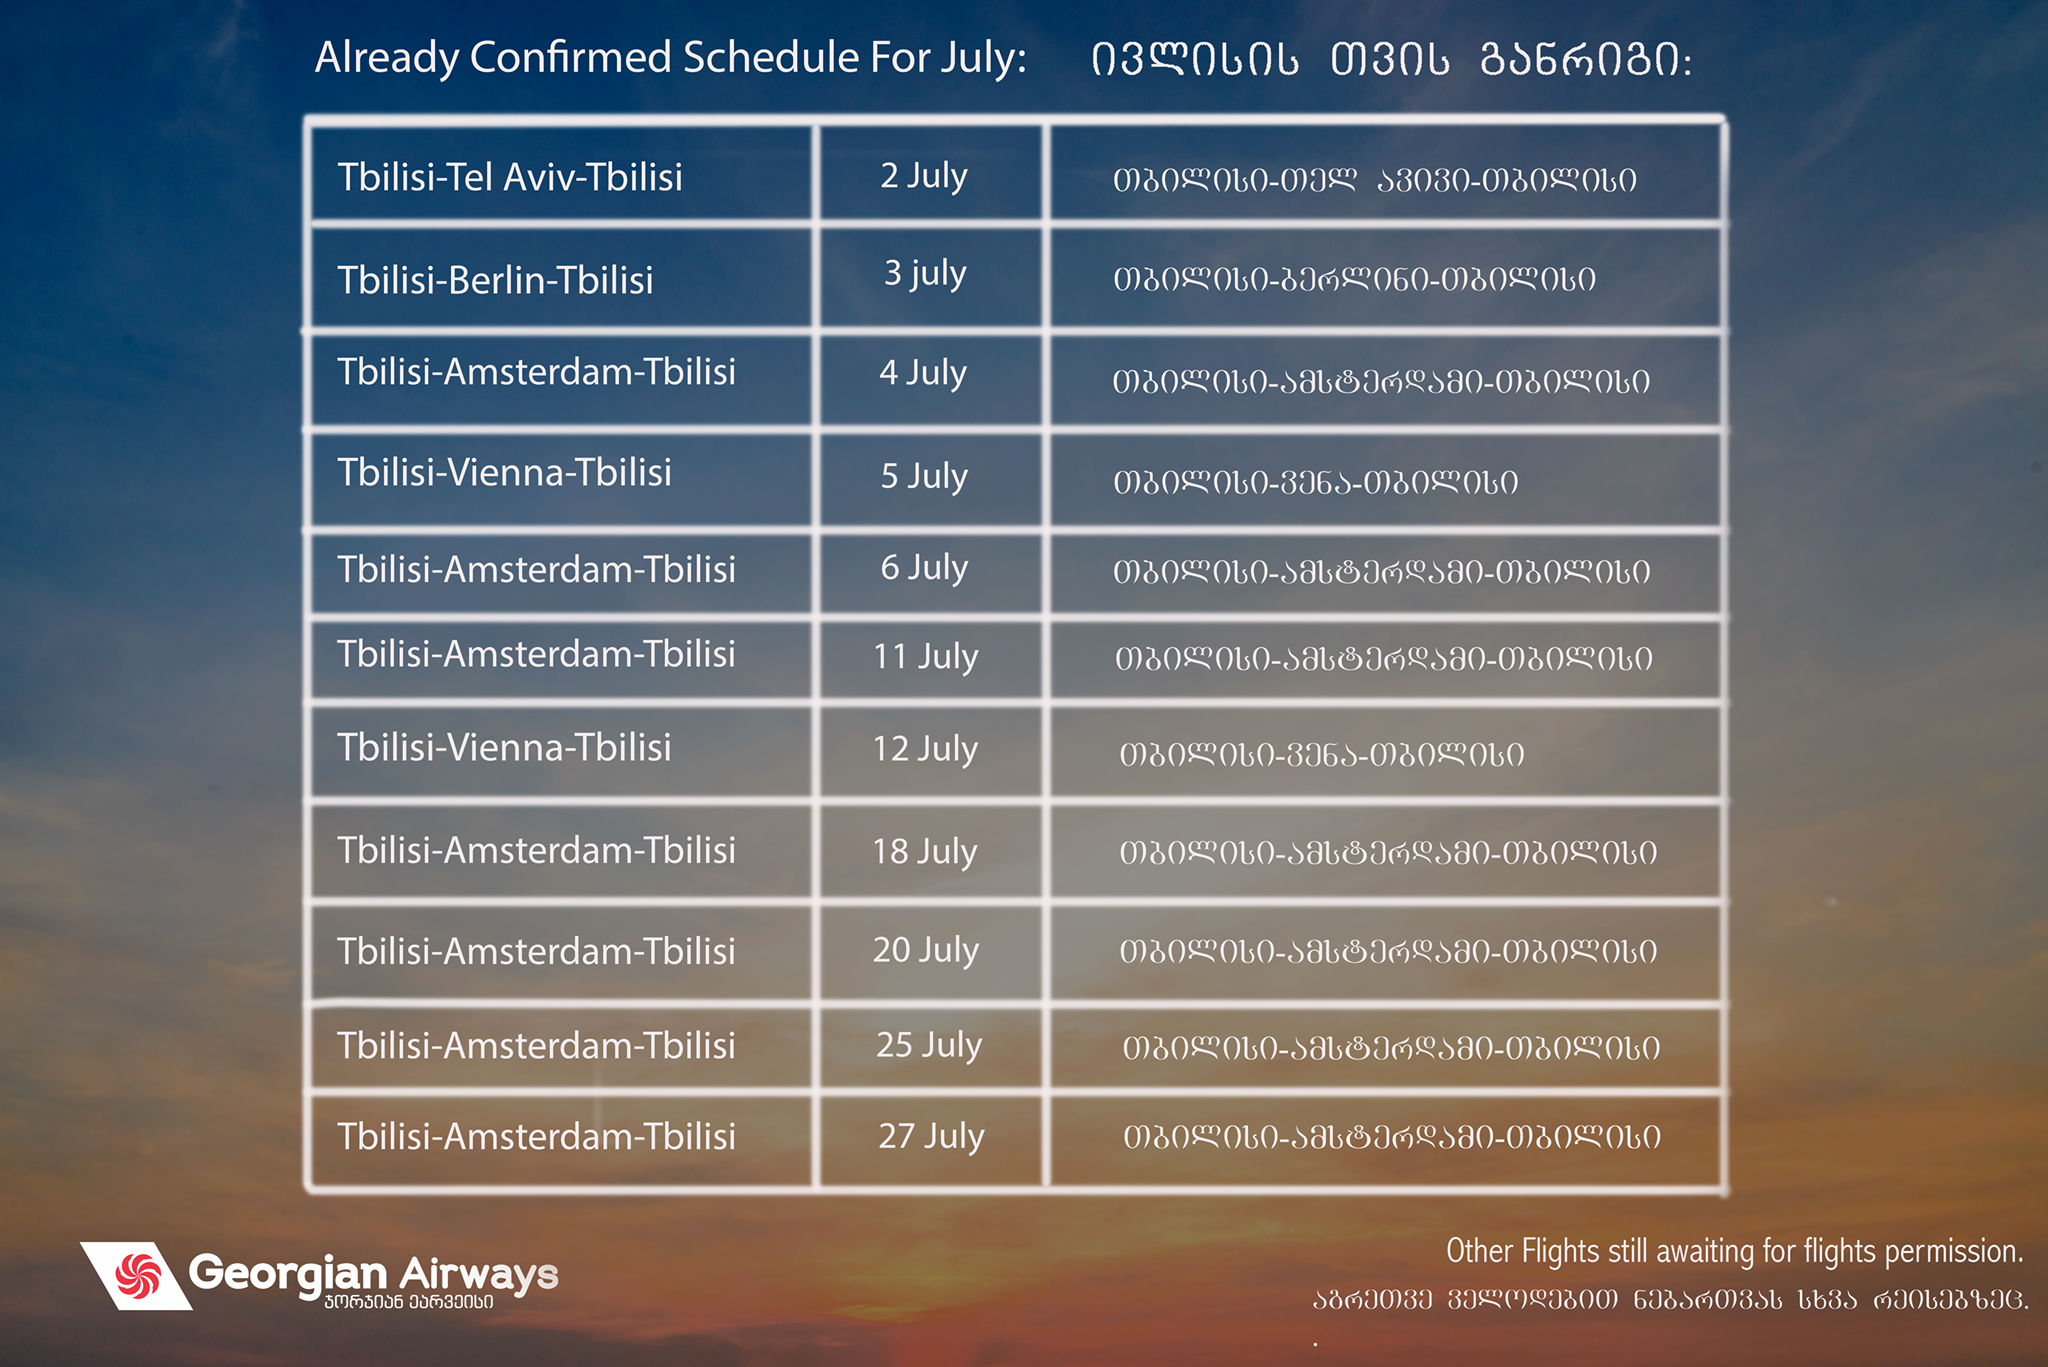 Already confirmed schedule for July: